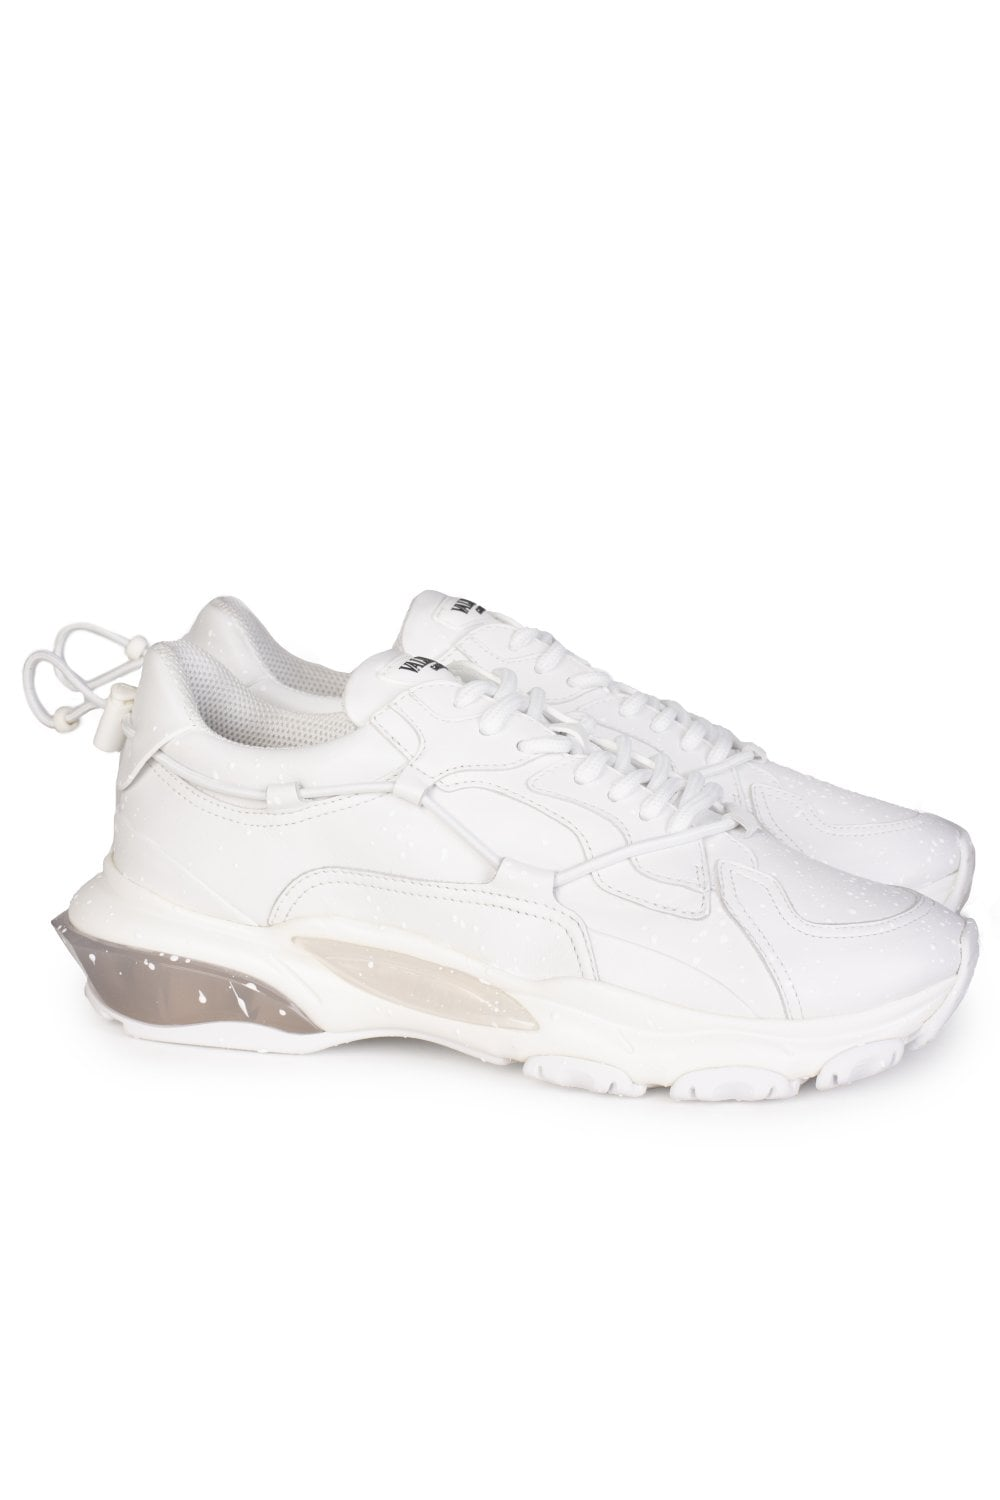 50a1a1f6c54b5 VALENTINO Valentino Garavani Bounce Sneakers - Clothing from Circle ...